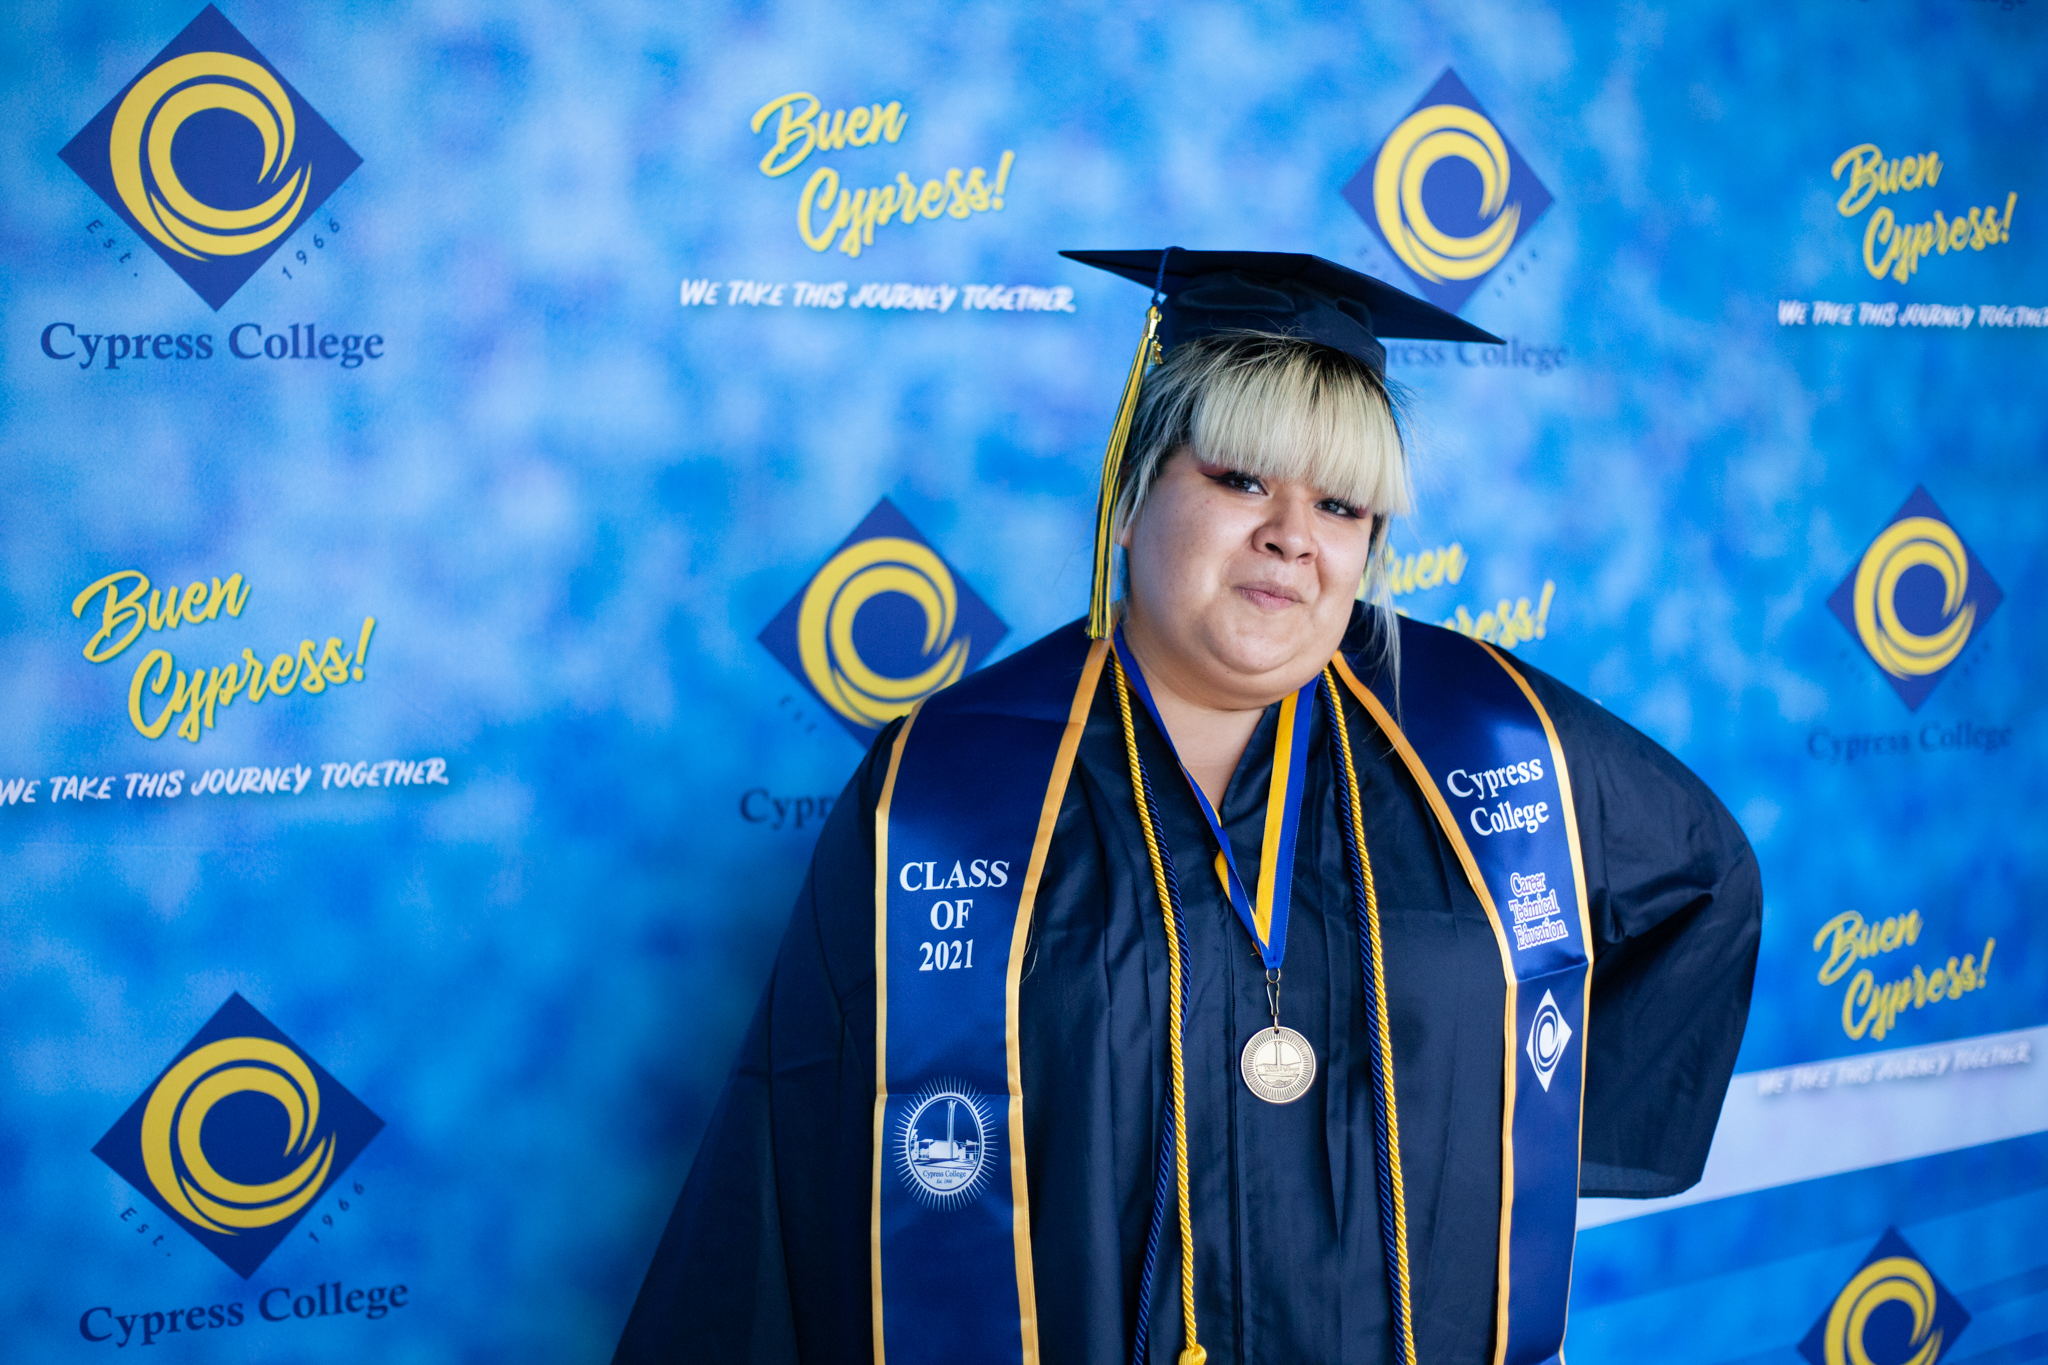 Culinary Arts student Alexandra Camacho poses in front of a blue background.